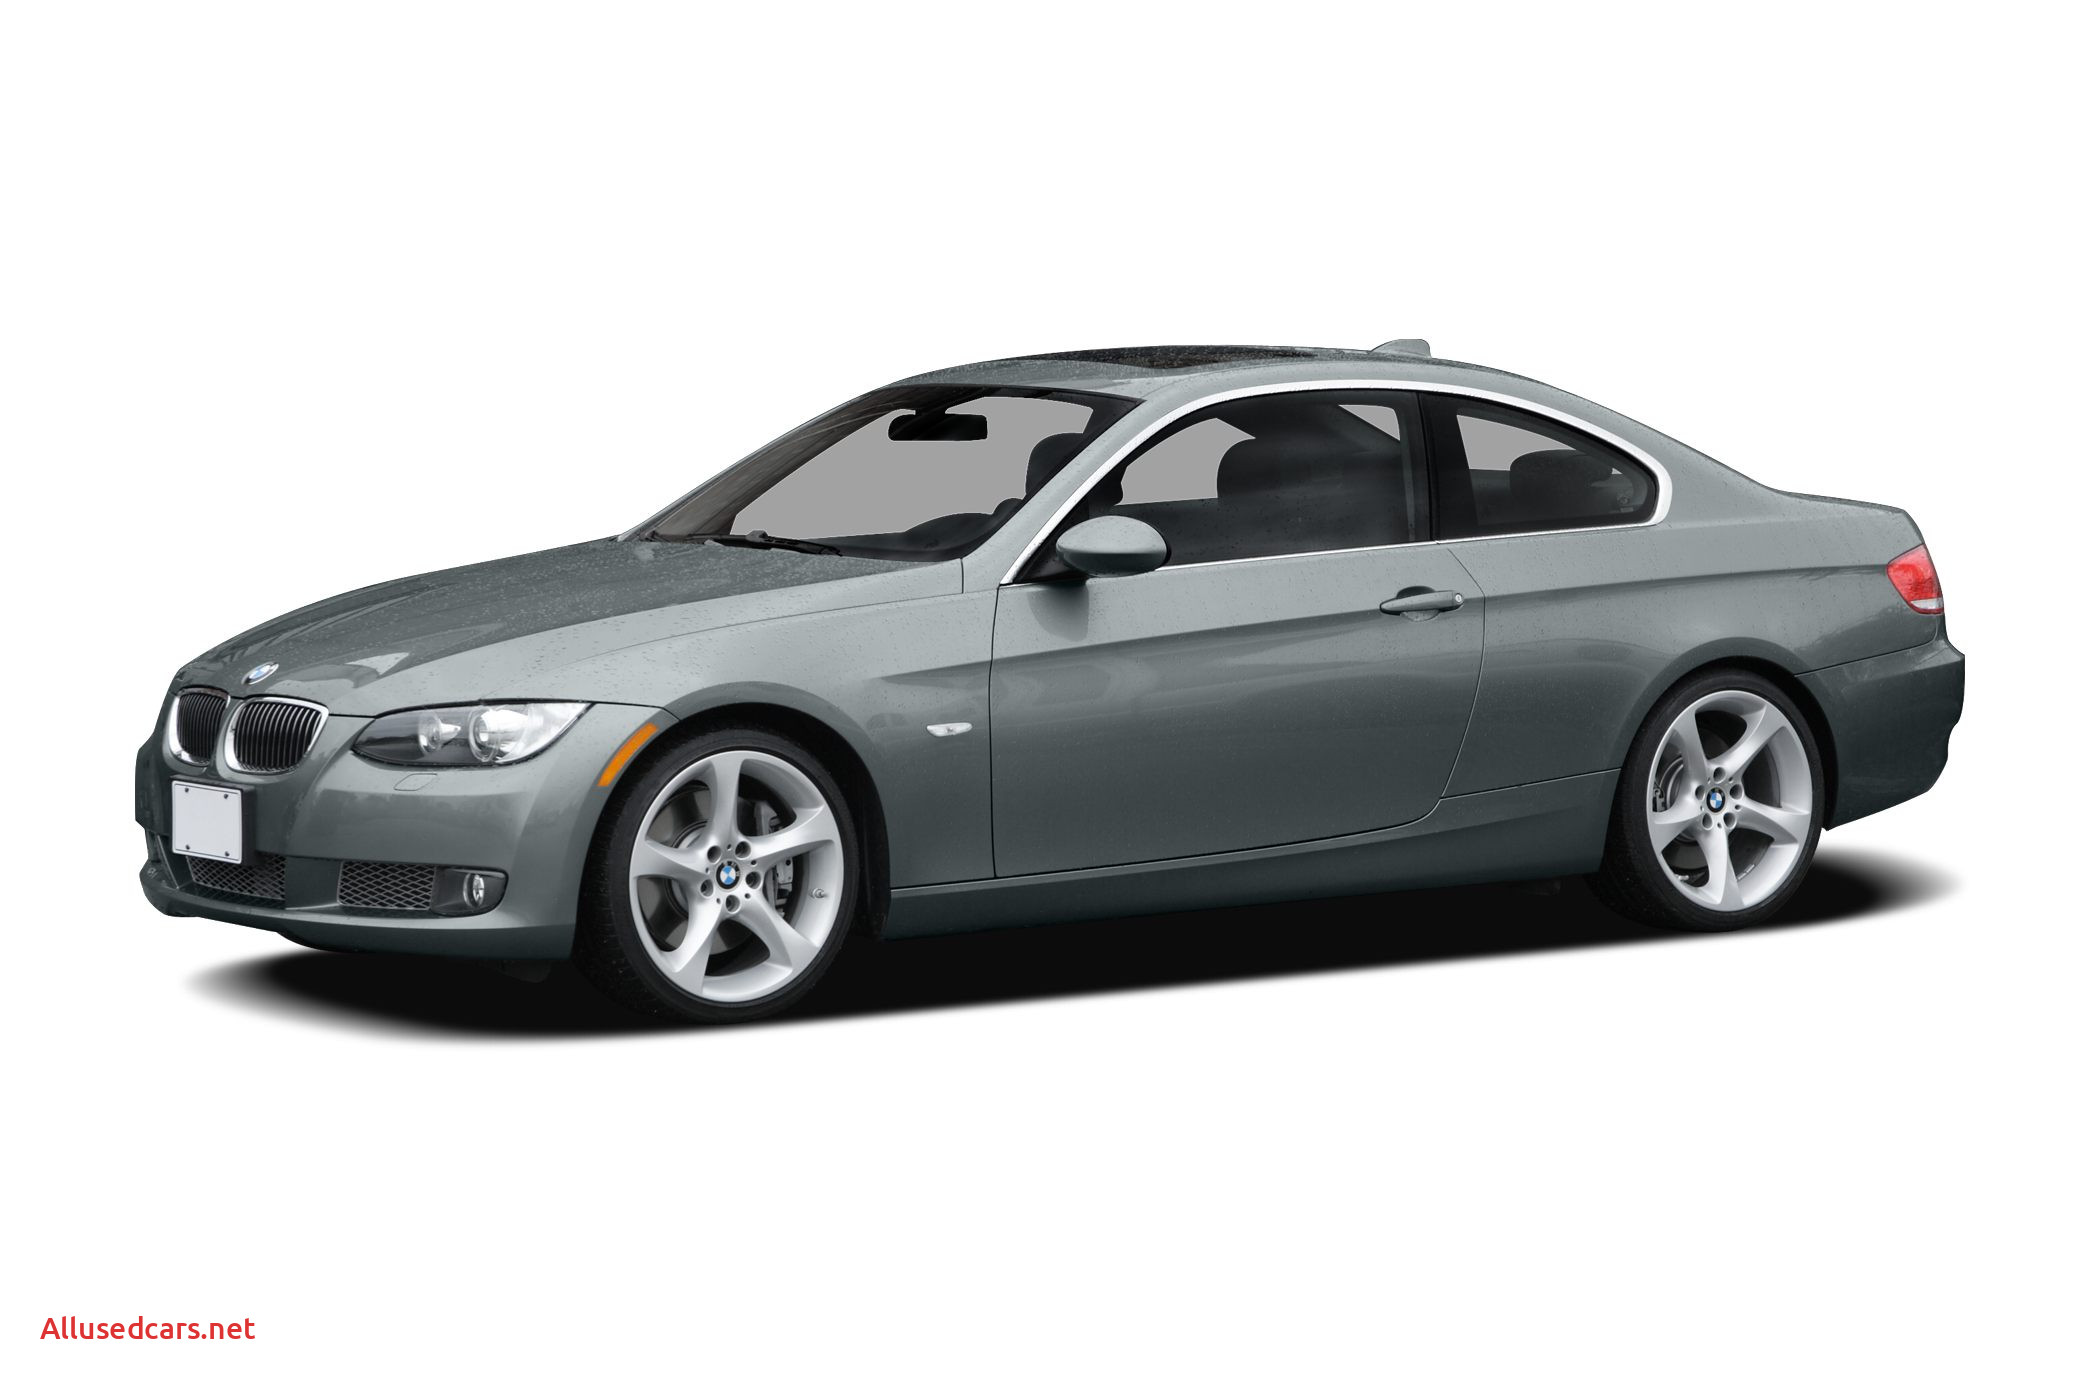 Bmw 335i Coupe Fresh 2008 Bmw 335 Specs and Prices